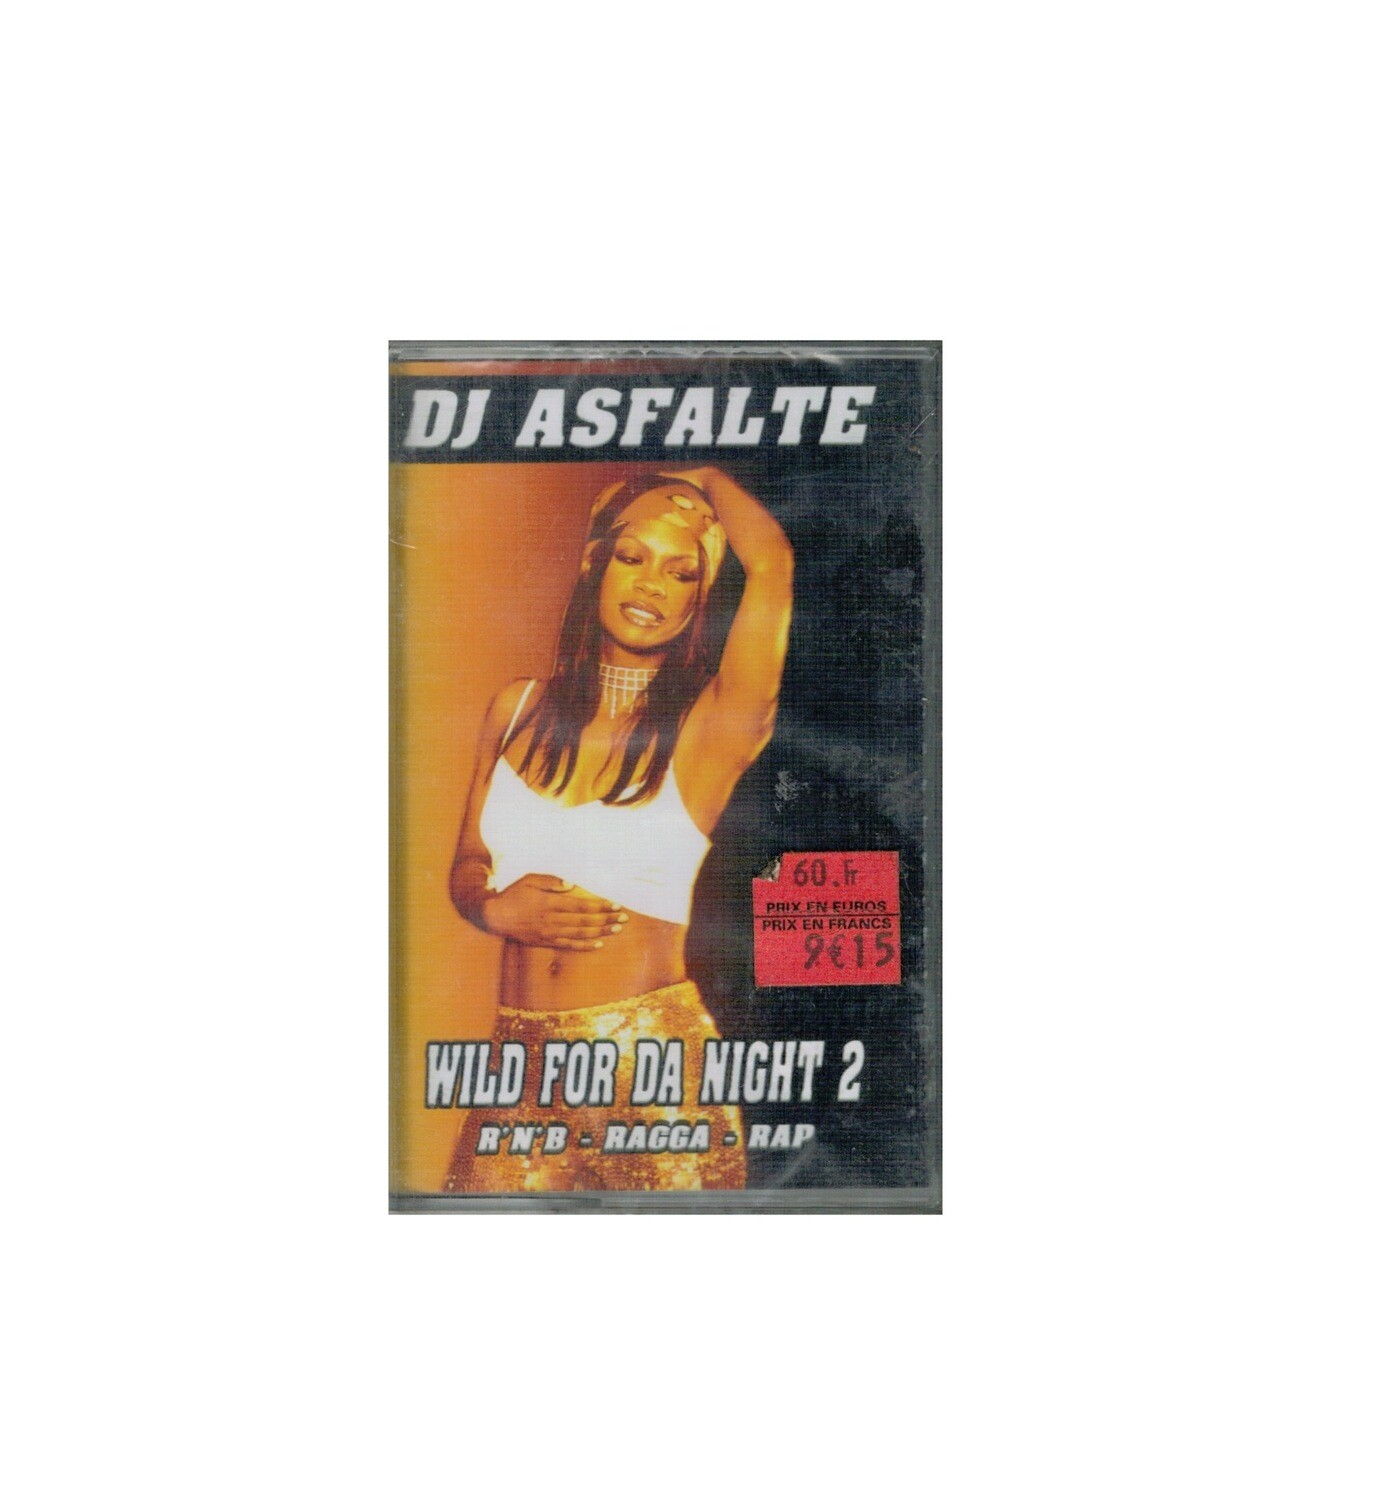 MIXTAPE DJ ASFALTE WILD FOR DA NIGHT 2 RNB RAGGA RAP MIX TAPE RARE COLLECTOR SON MUSIC MUSIQUE COMASOUND KARTEL CSK ONLINE